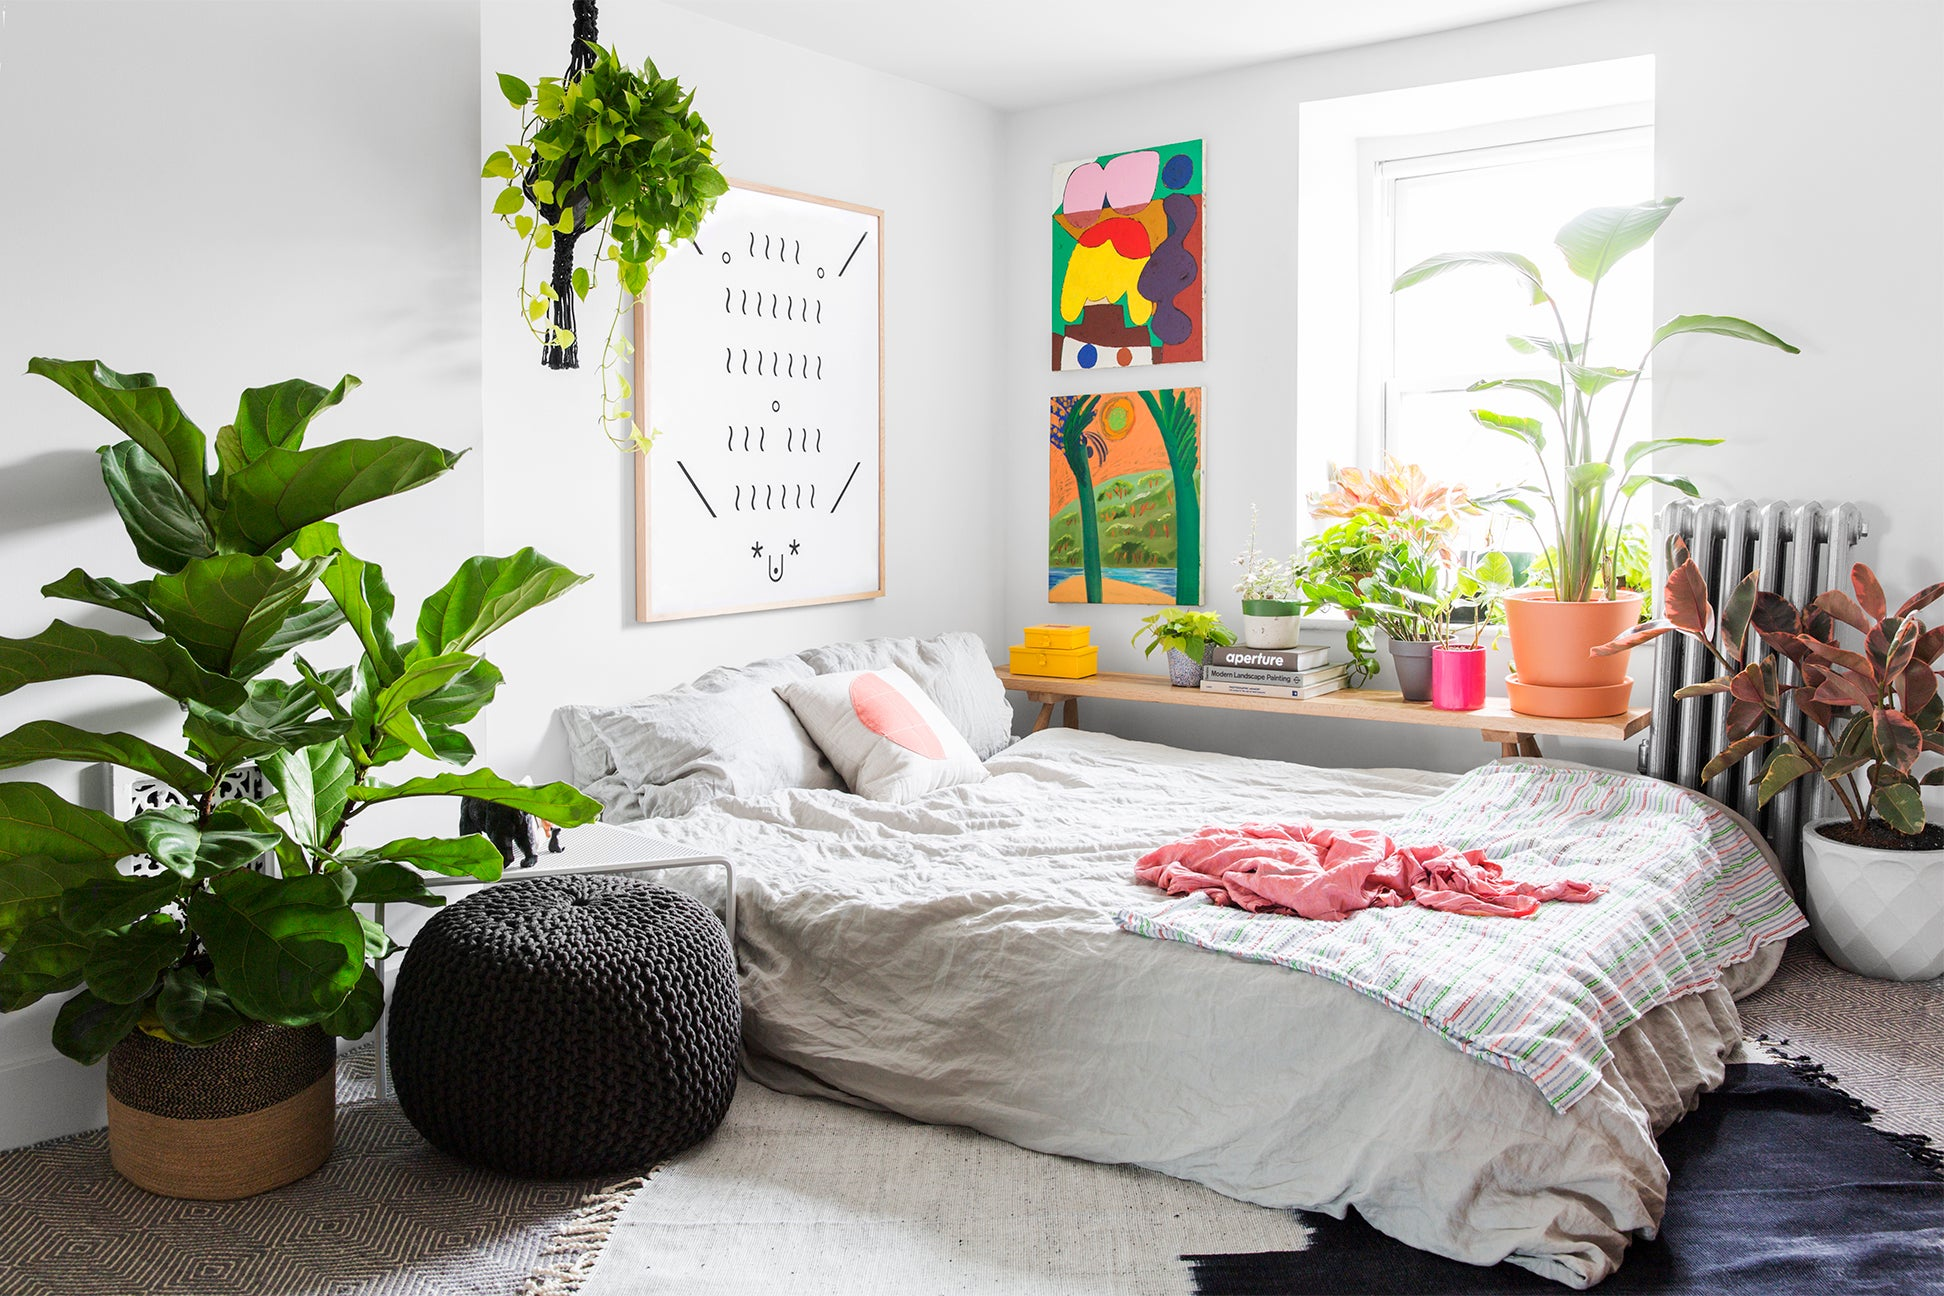 bedroom with lots of plants and rainbow artwork